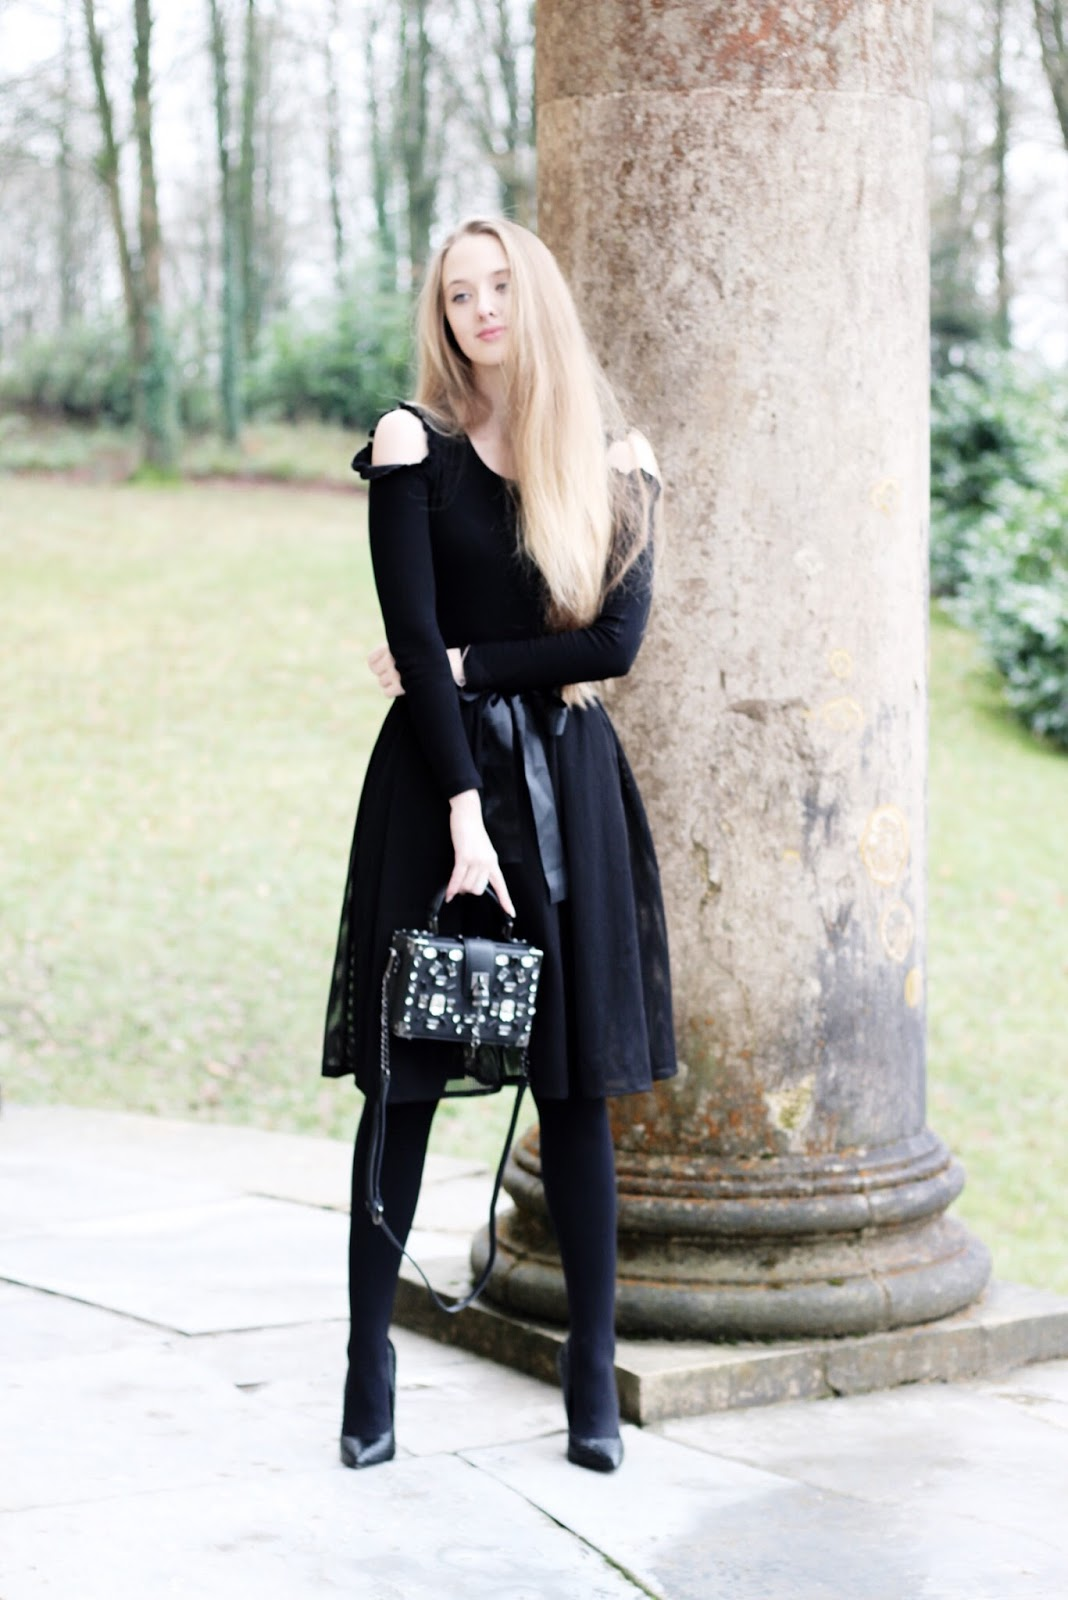 UK fashion blogger all black outfit styling